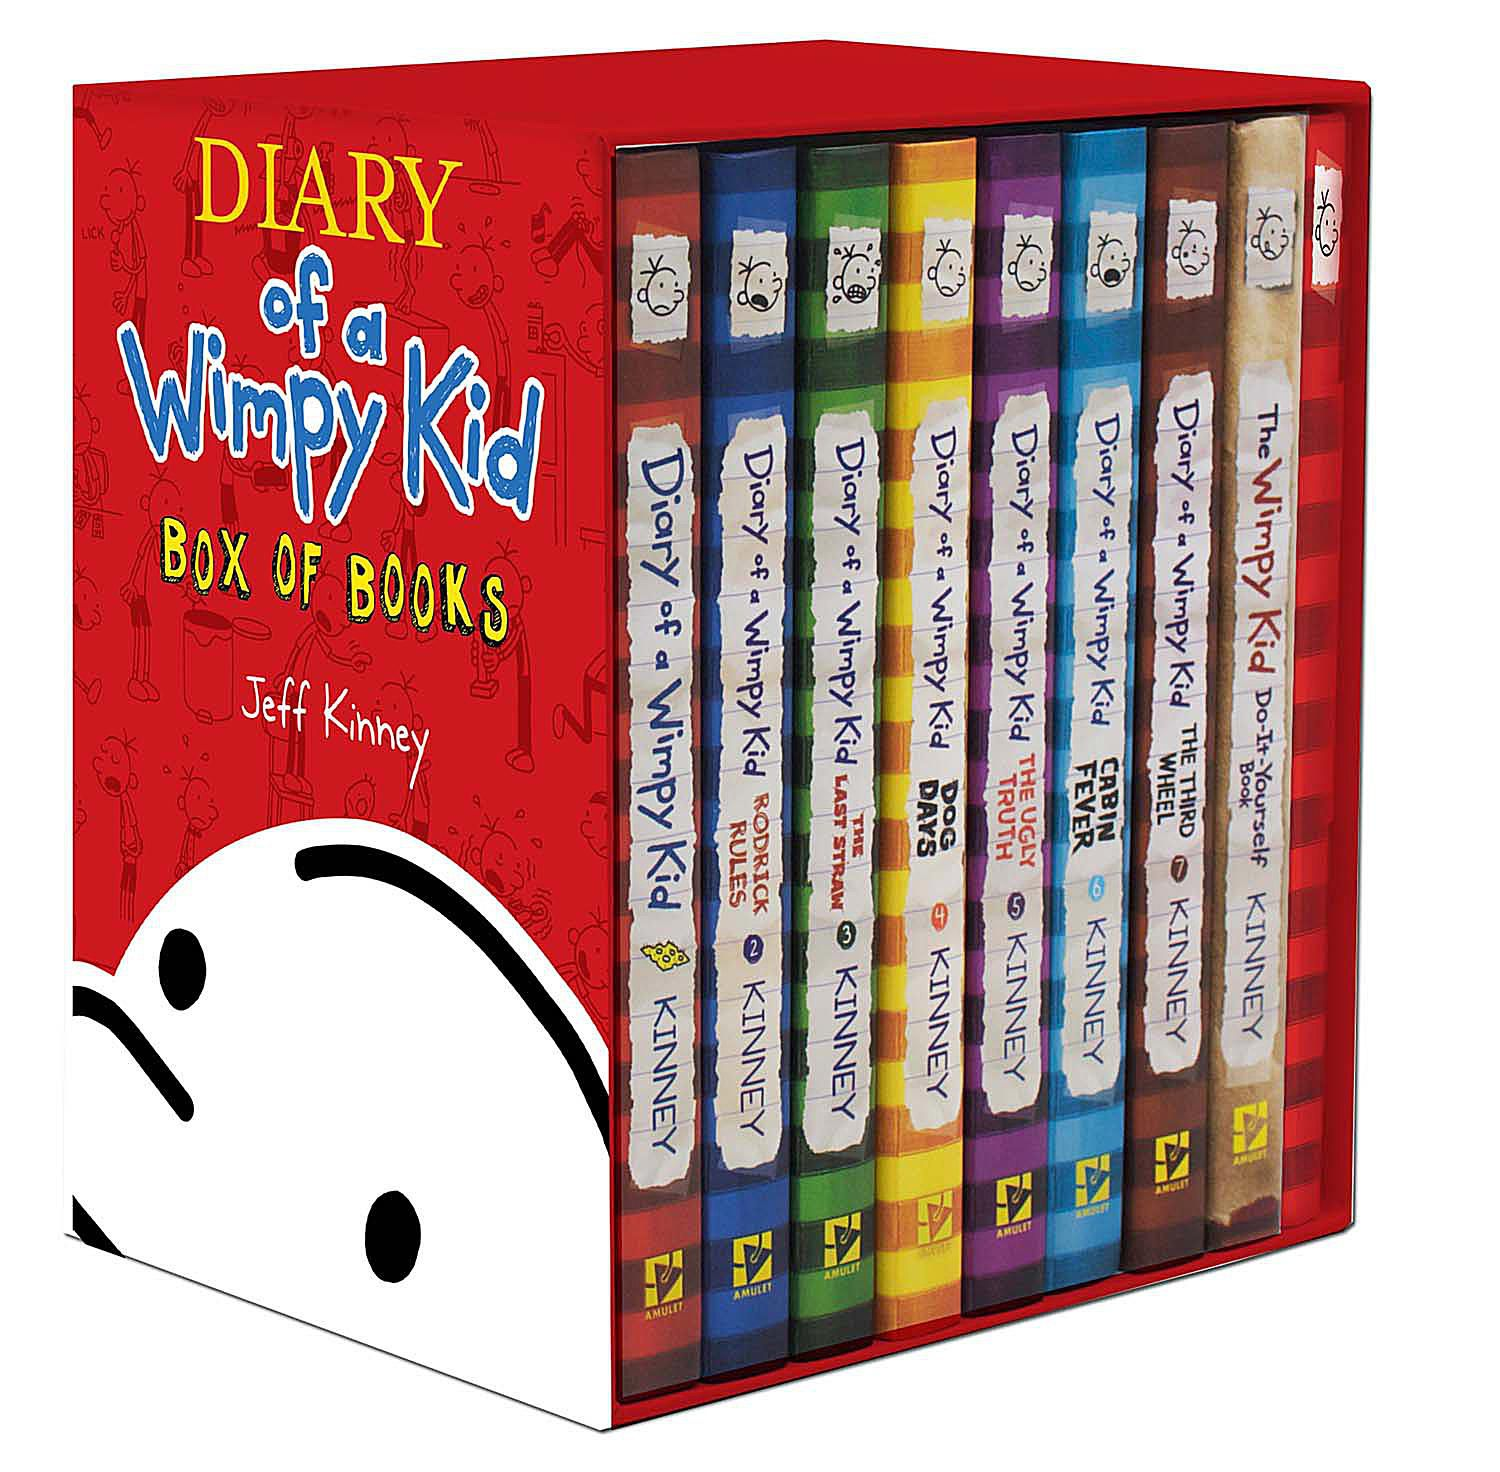 Diary of a wimpy kid book one in popular series why your child should read diary of a wimpy kid solutioingenieria Images